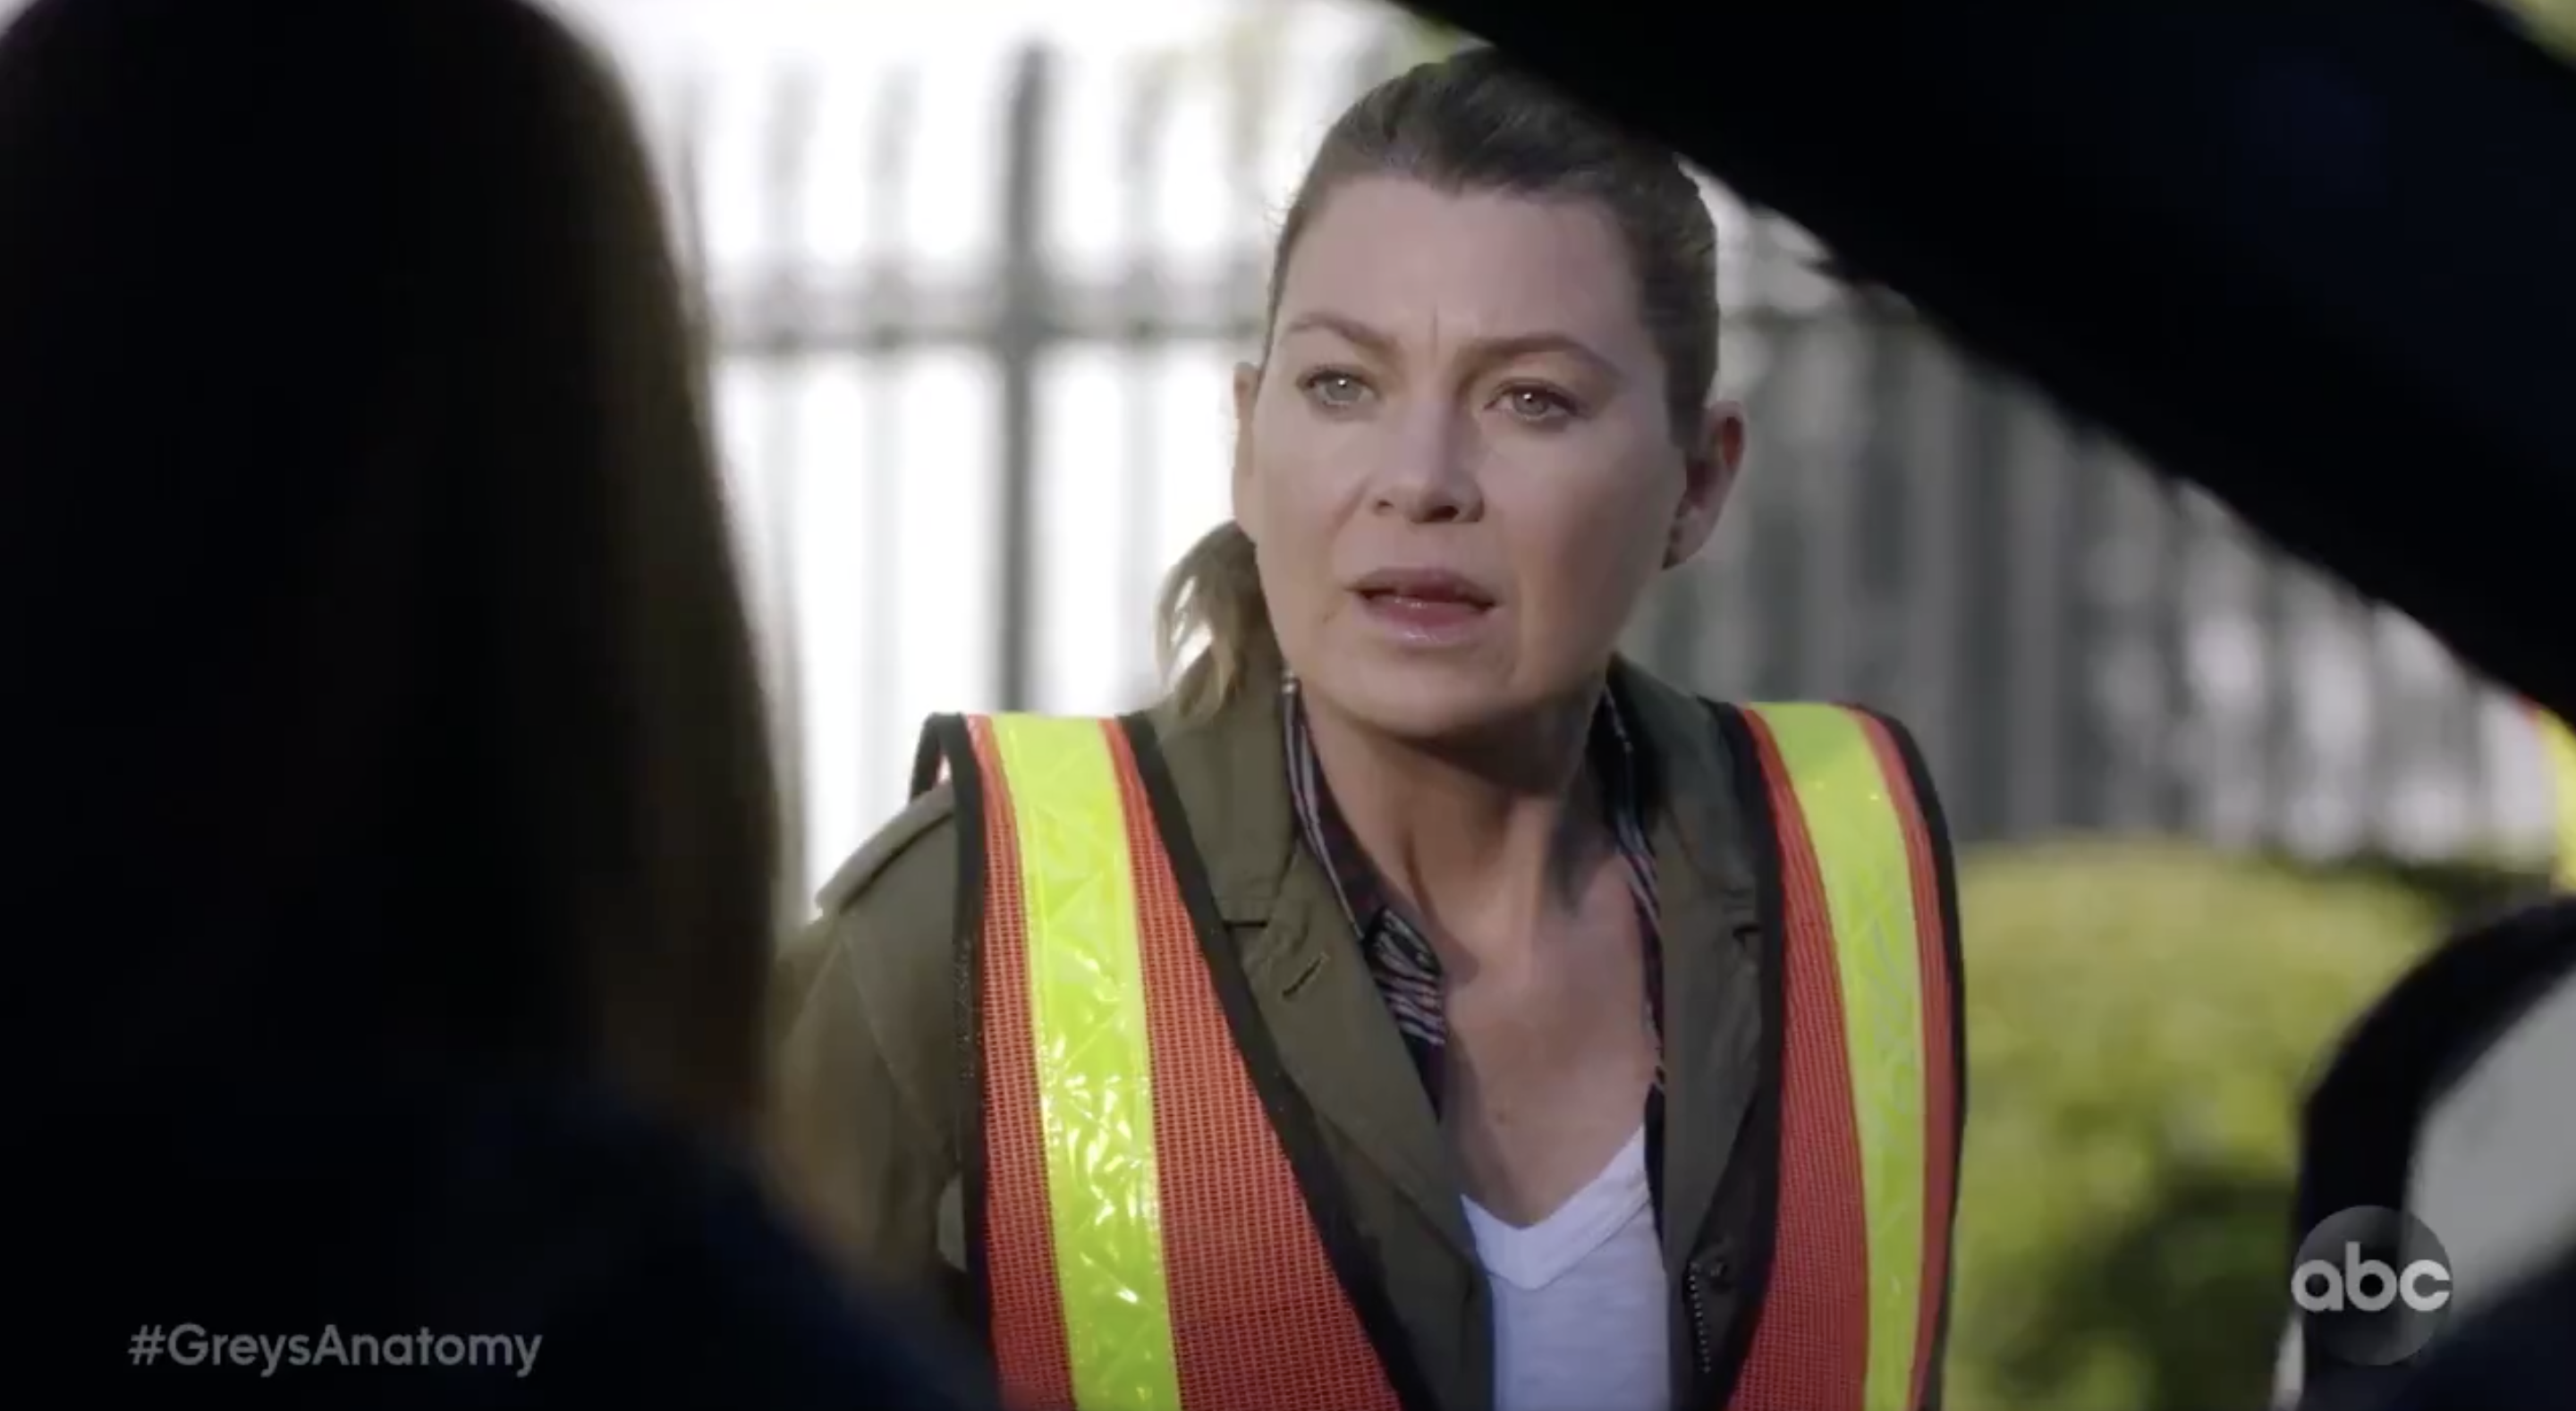 Grey's Anatomy season 16 releases official poster with Ellen Pompeo